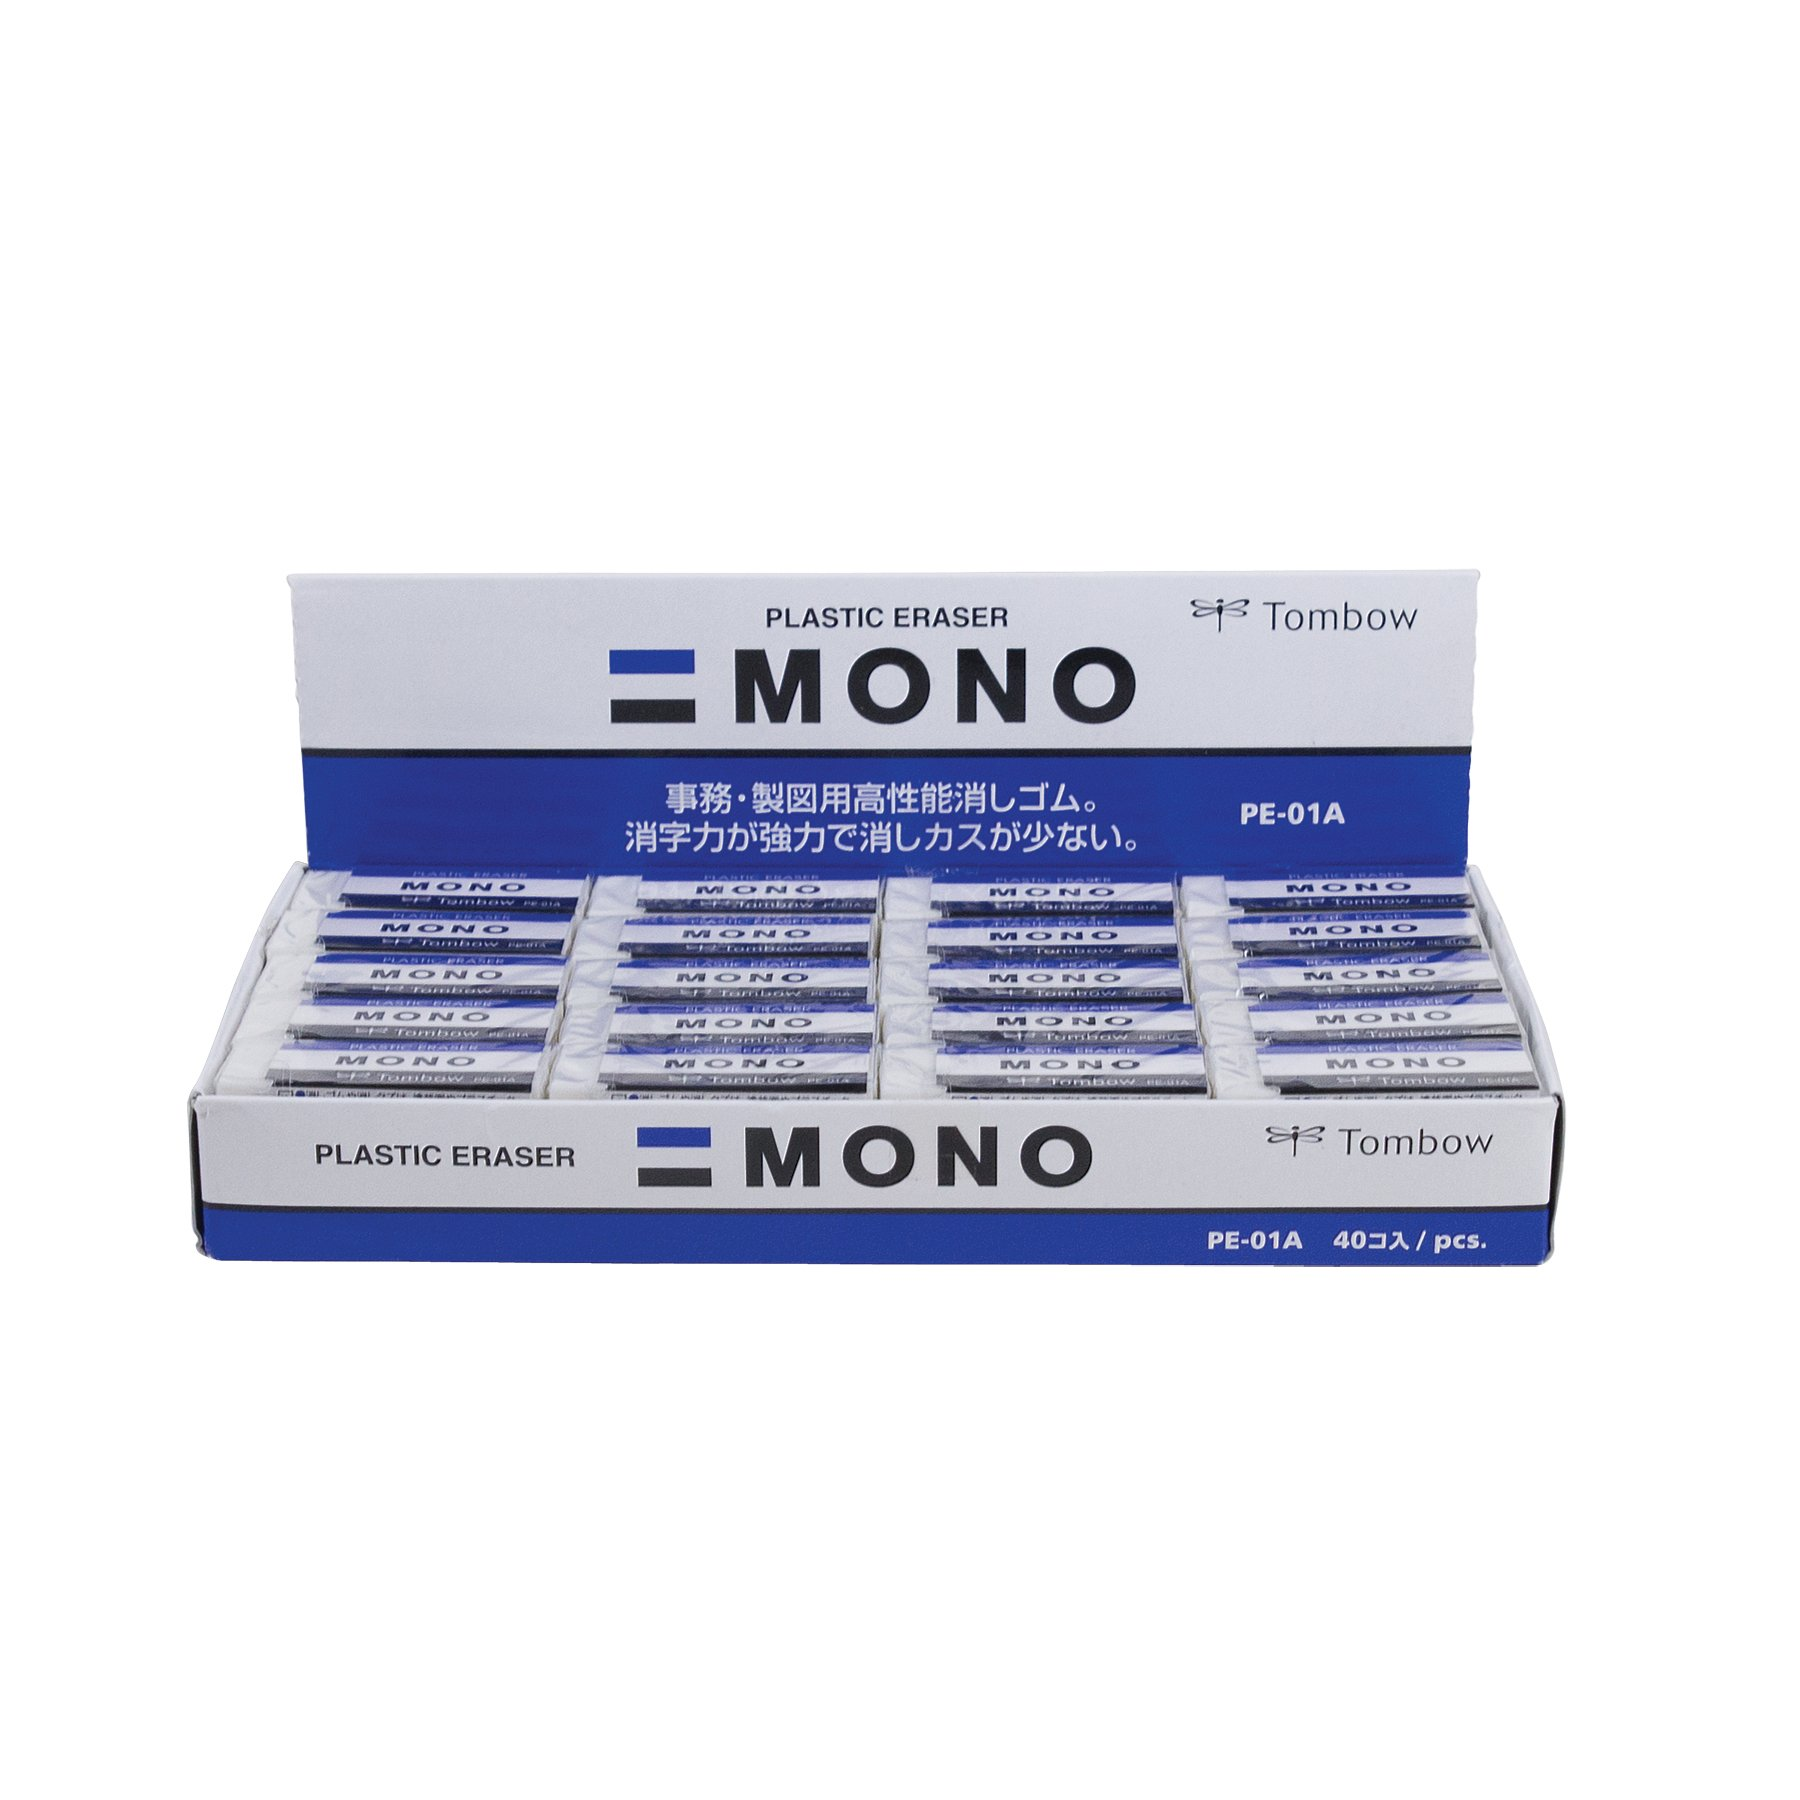 American Tombow TOMBOW 57320 40 Piece Display Box Small TOMBOW 57320 Mono Eraser, White by Tombow (Image #1)